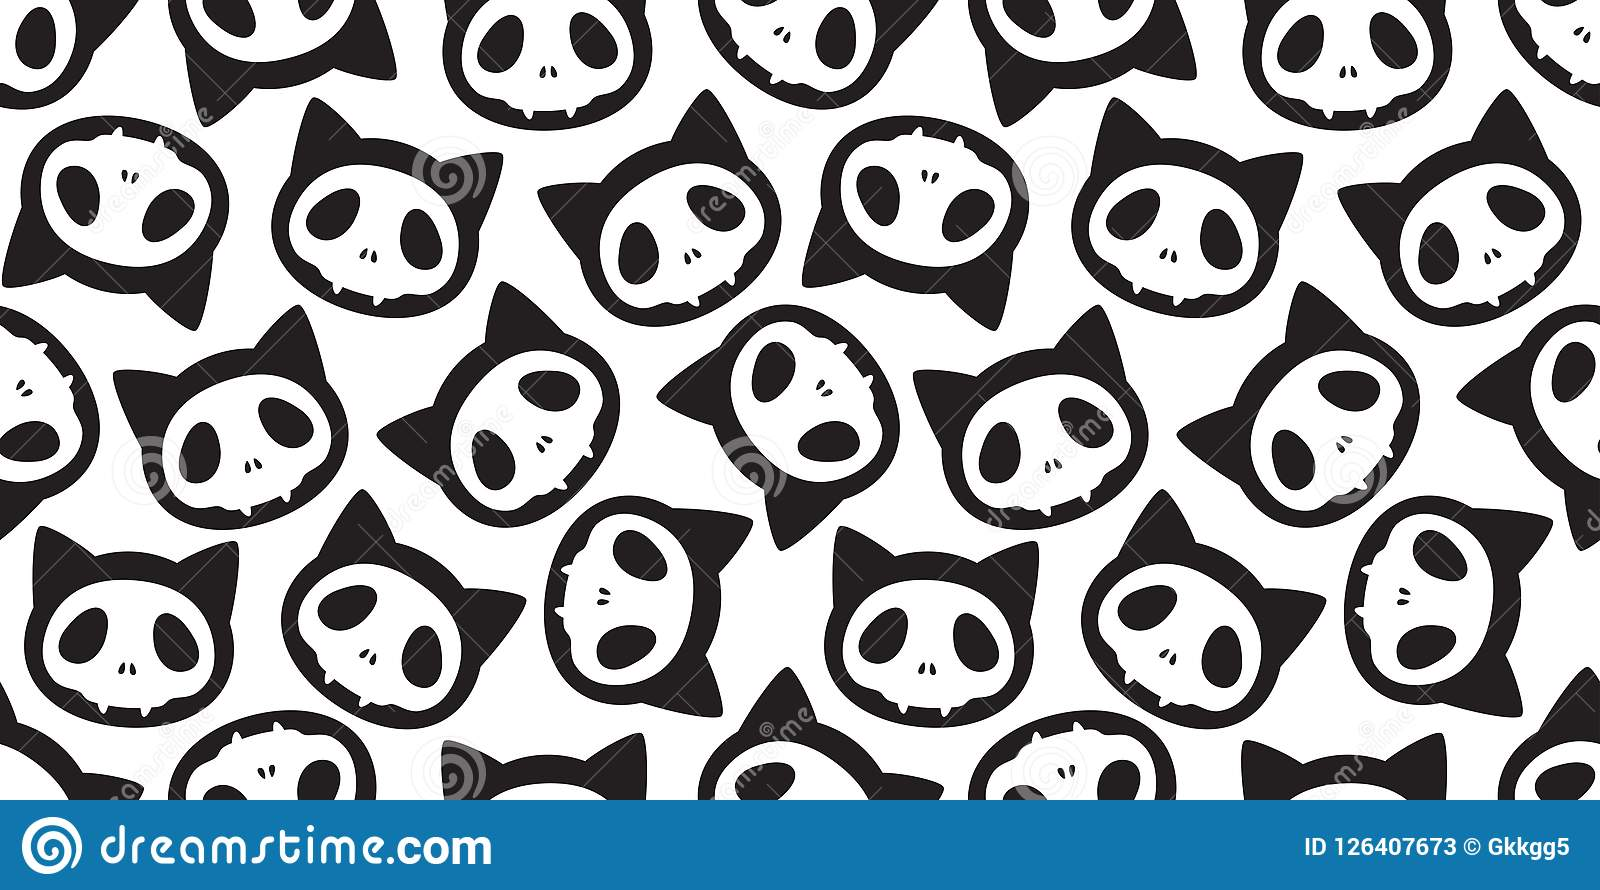 Cat seamless pattern Halloween Skull skeleton bone Ghost scarf isolated cartoon repeat wallpaper tile background